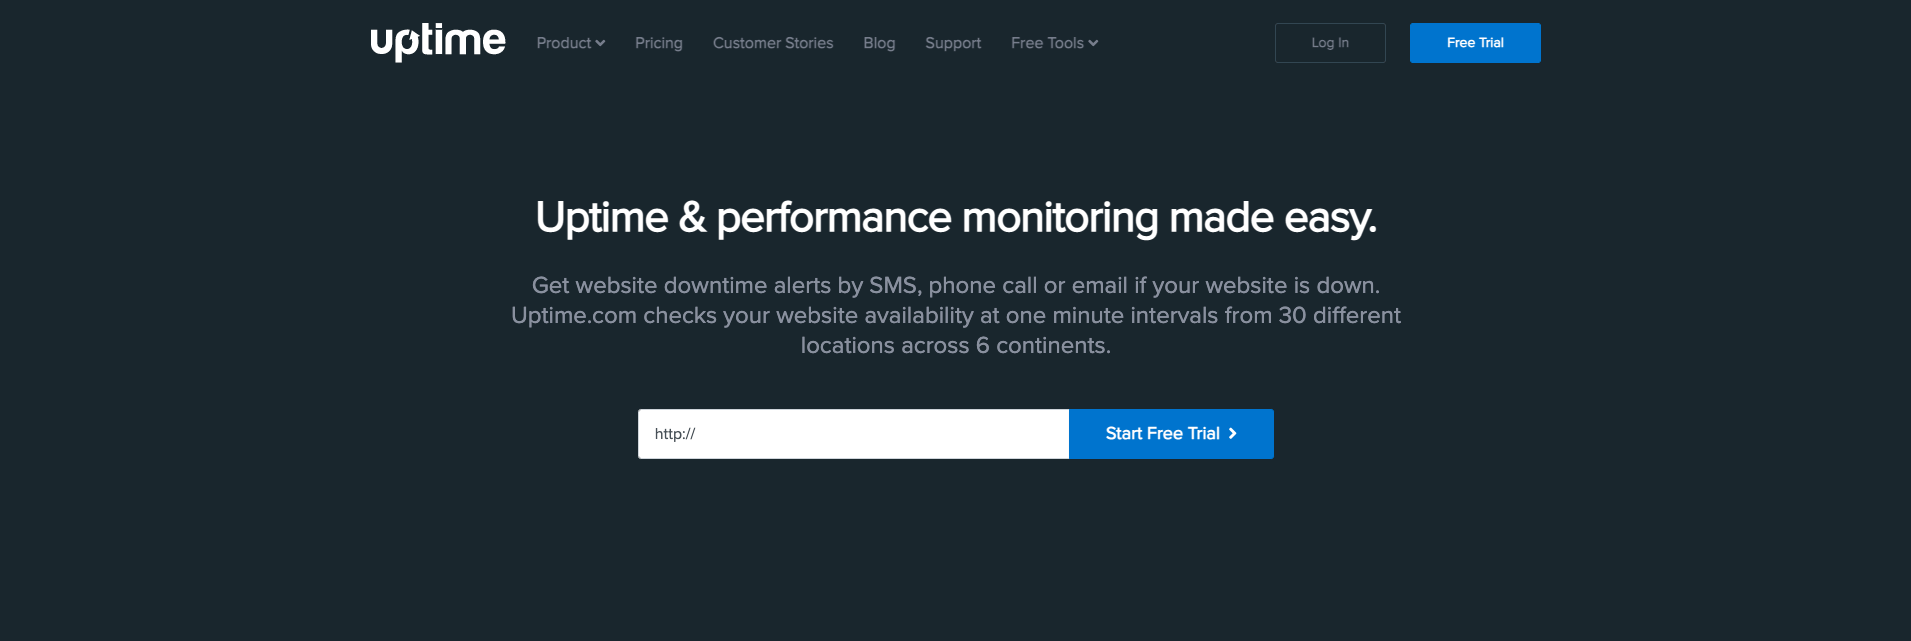 domain monitoring tool - uptime